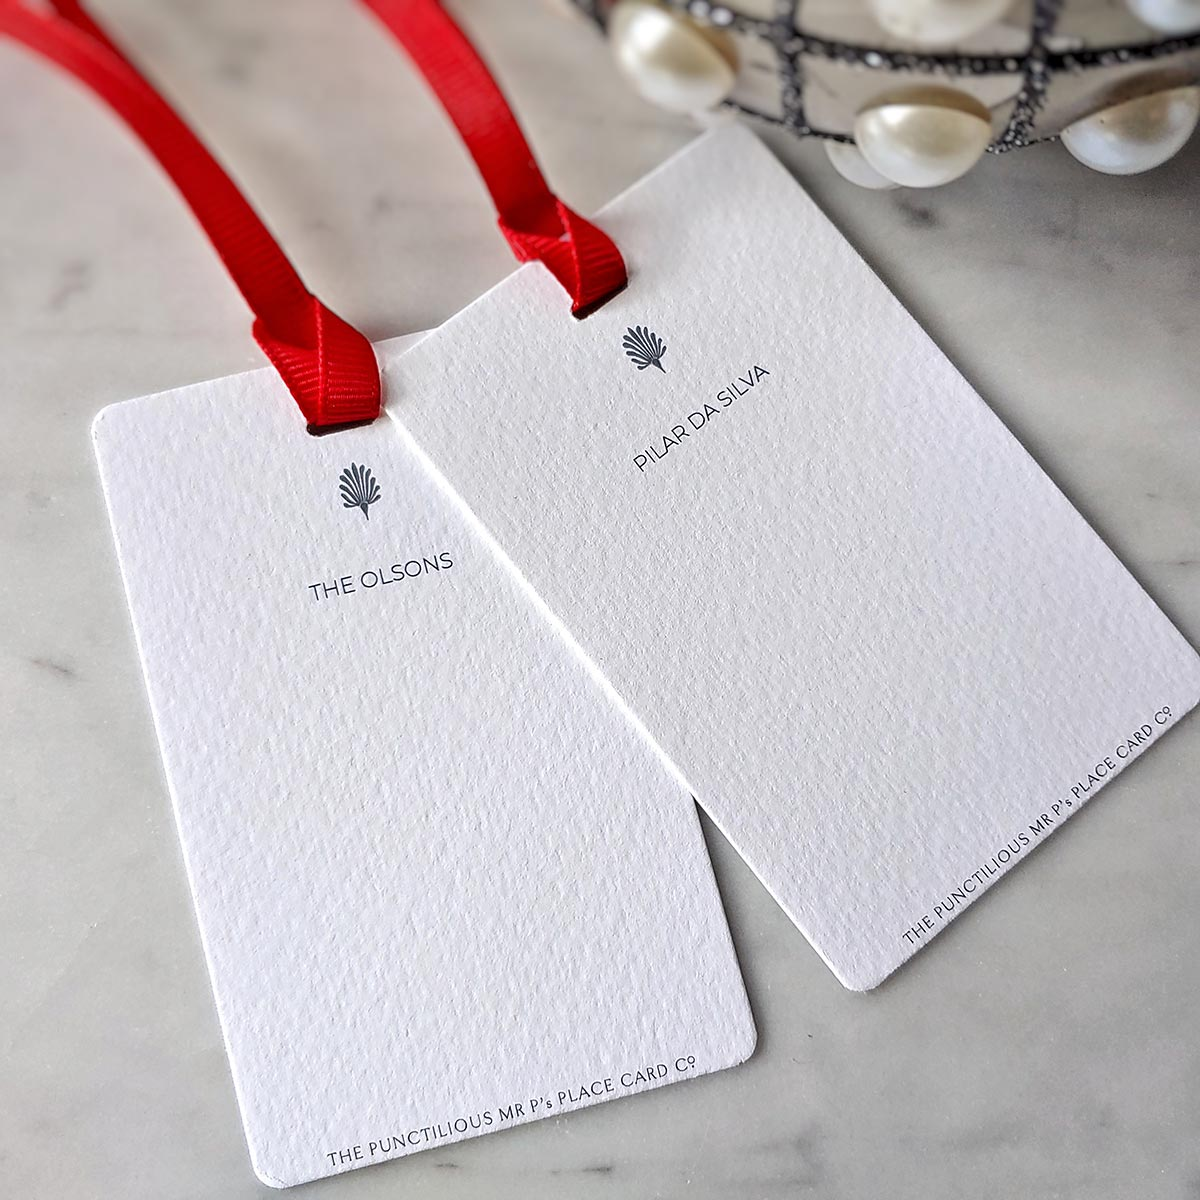 The Punctilious Mr. P's 'Gift Tags'- with personalized name at top